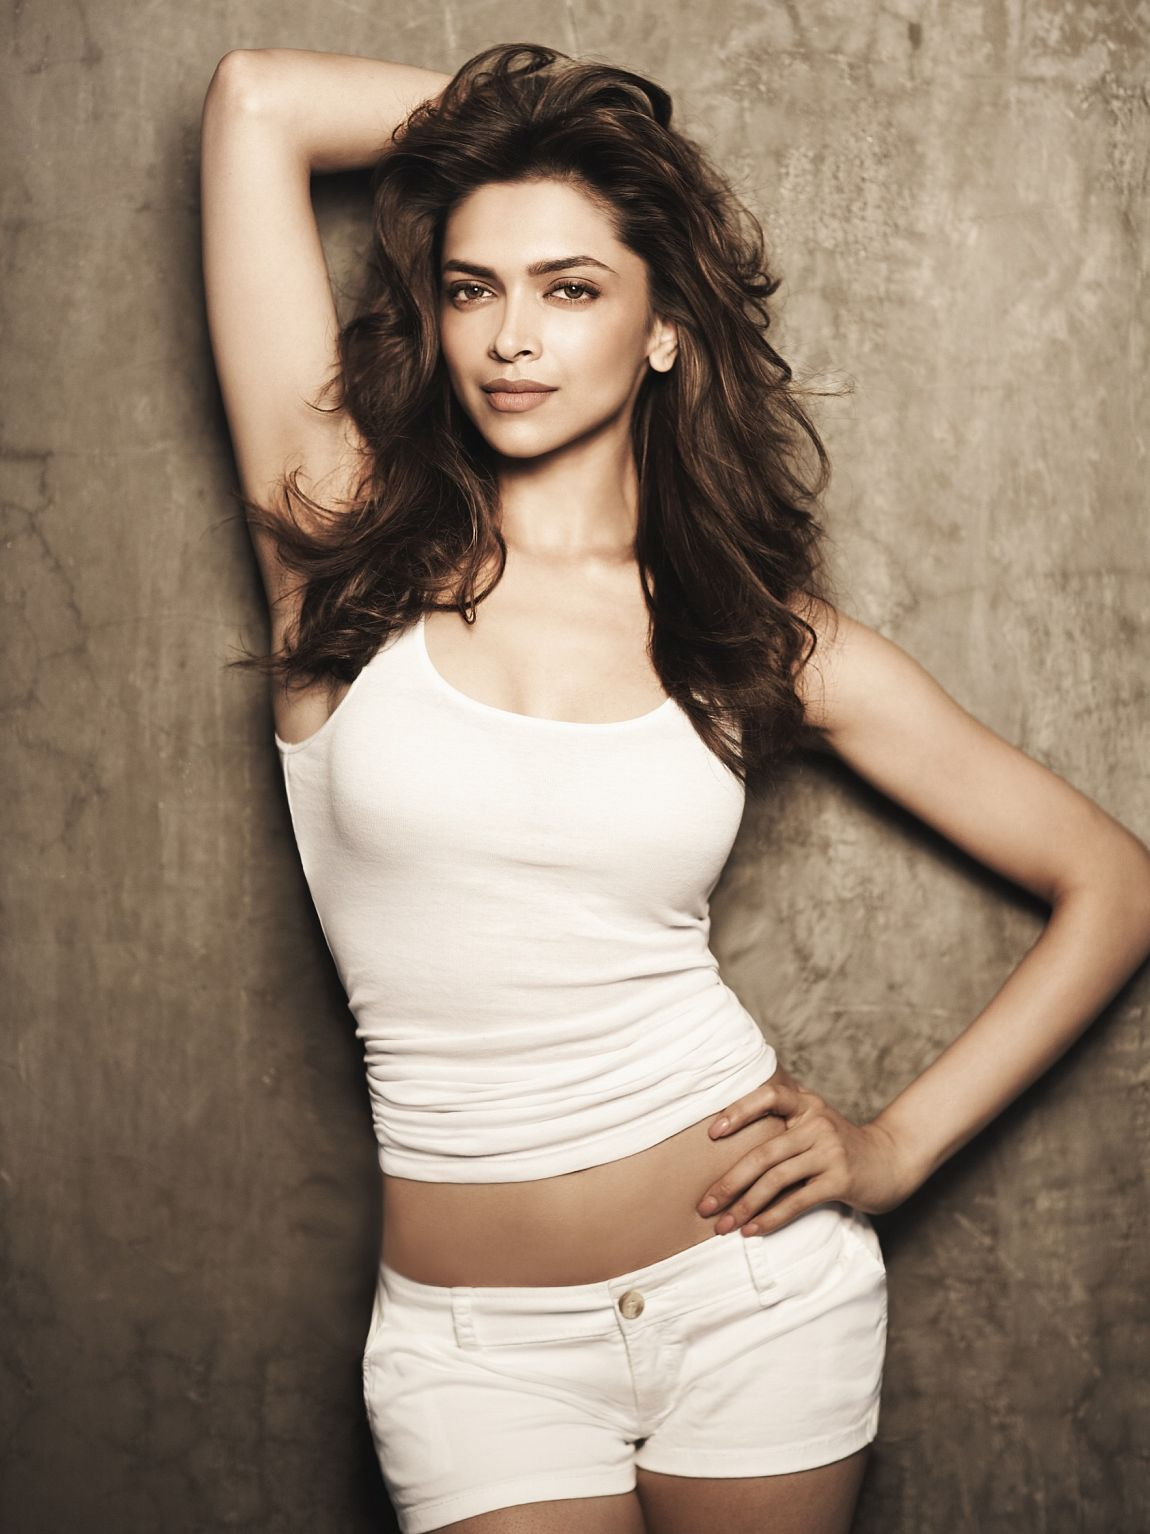 Deepika Padukone Hot And Sexy Hd Pics  South Indian -2622